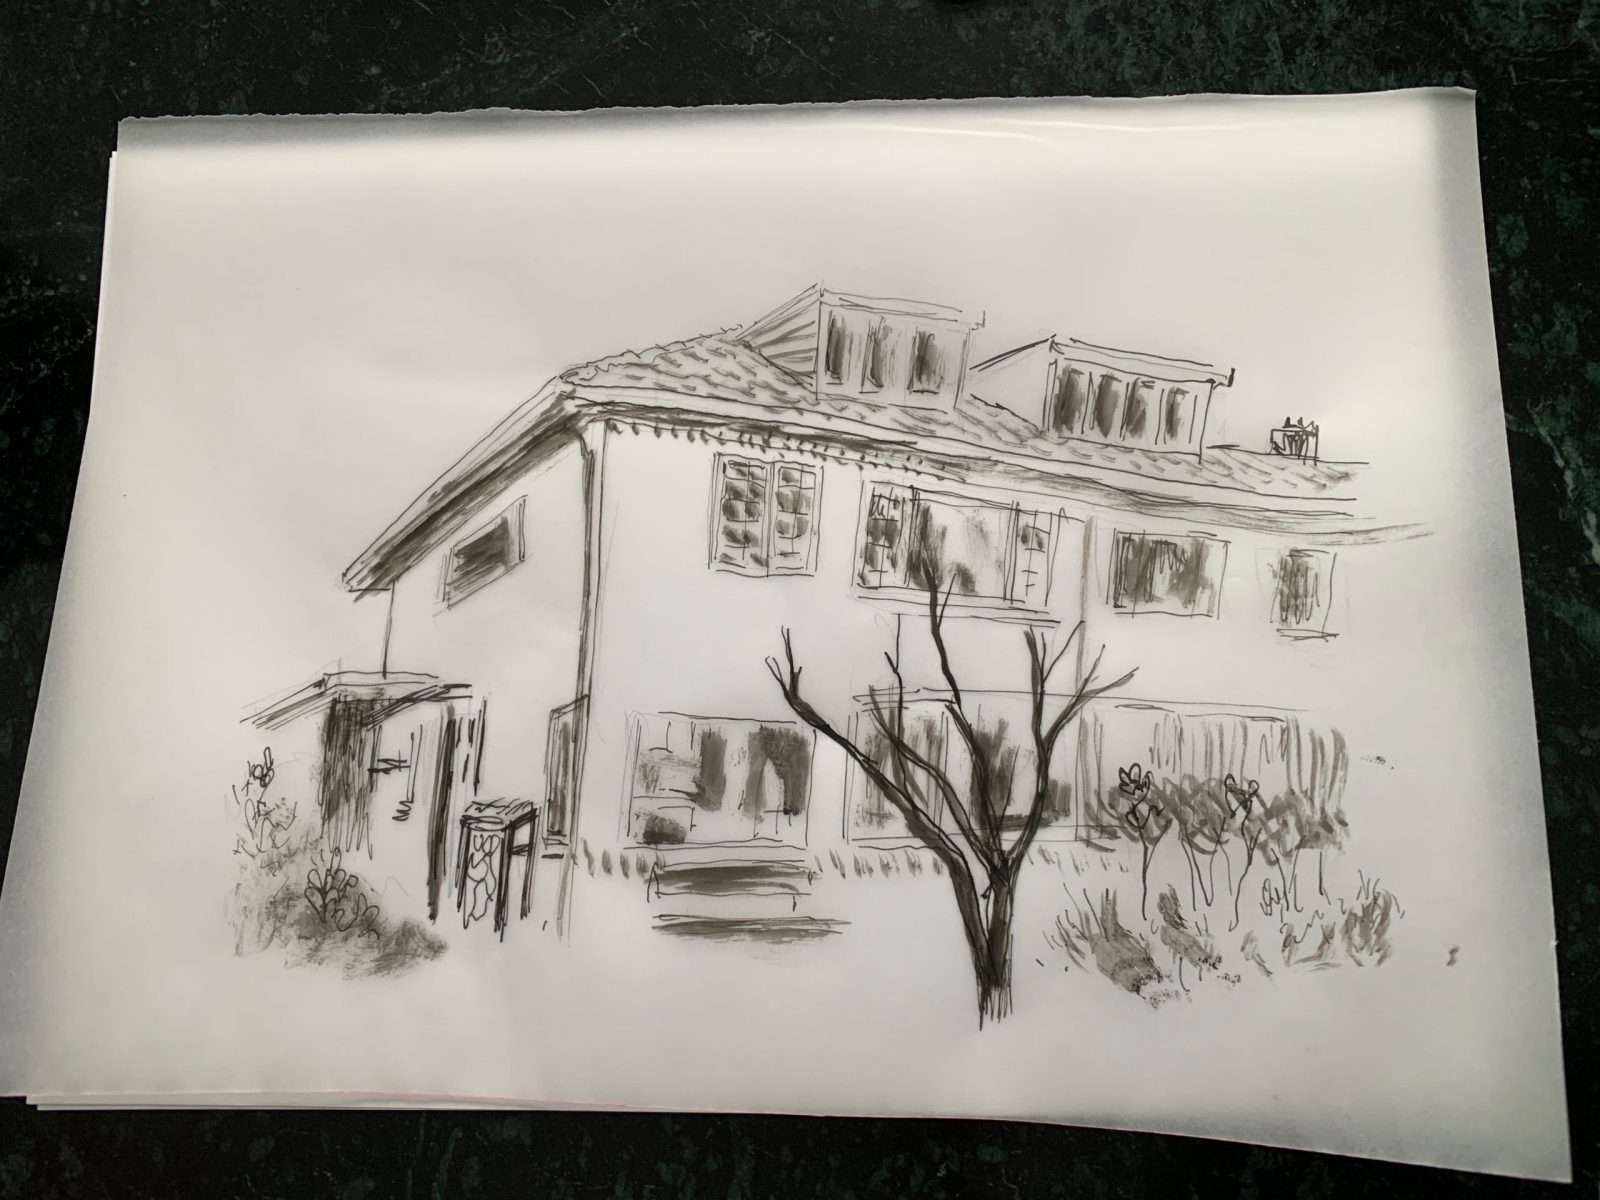 Sketch of childhood home in Amersfoort, Gilad Seliktar